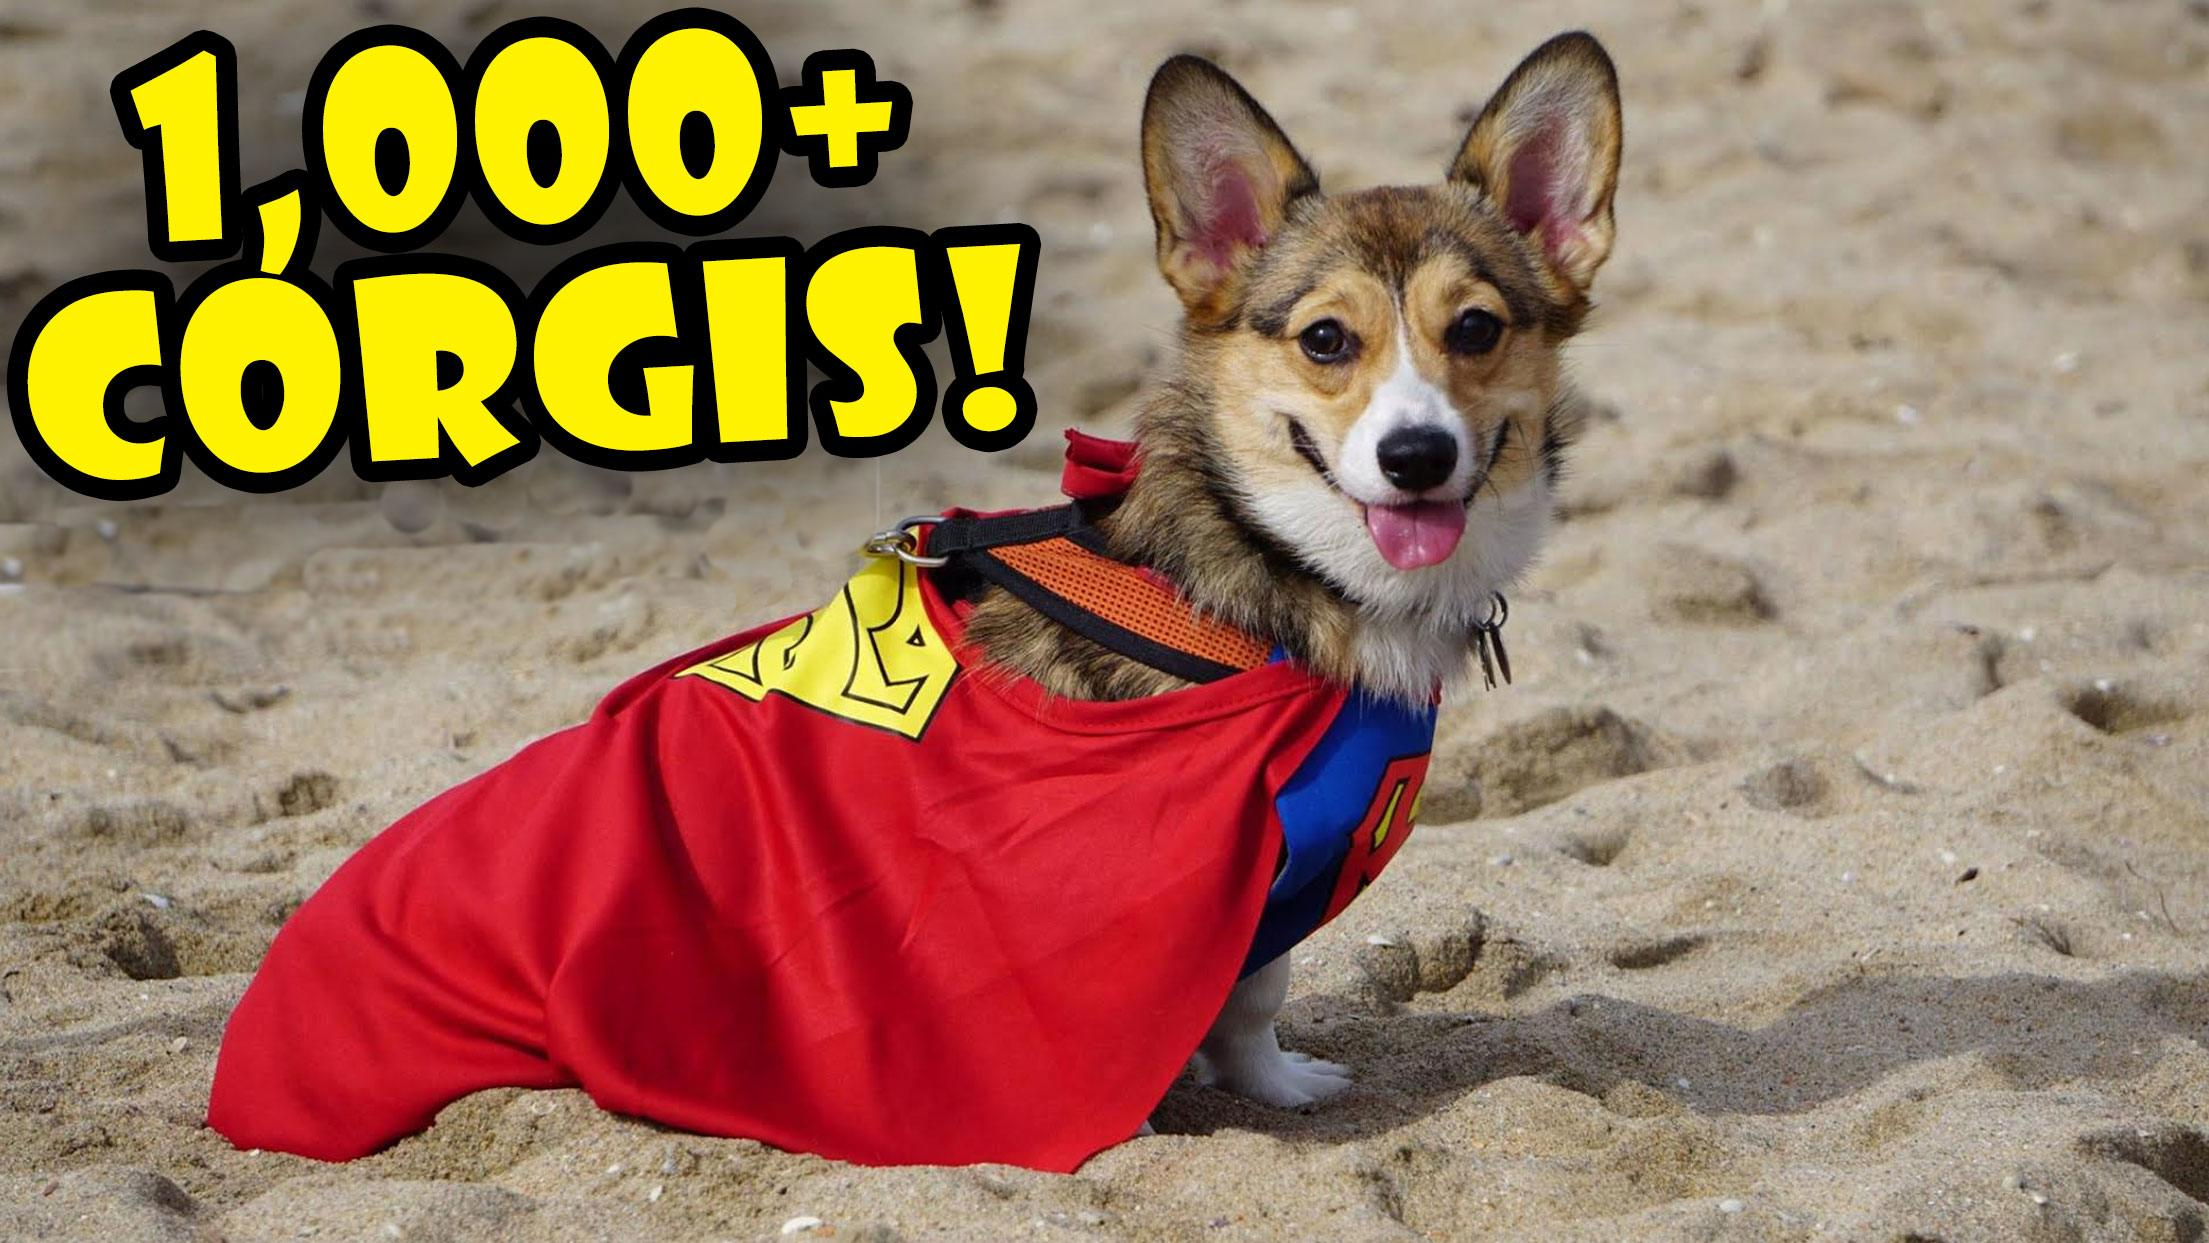 1000 CORGIS IN COSTUME - World's Largest Corgi Party!